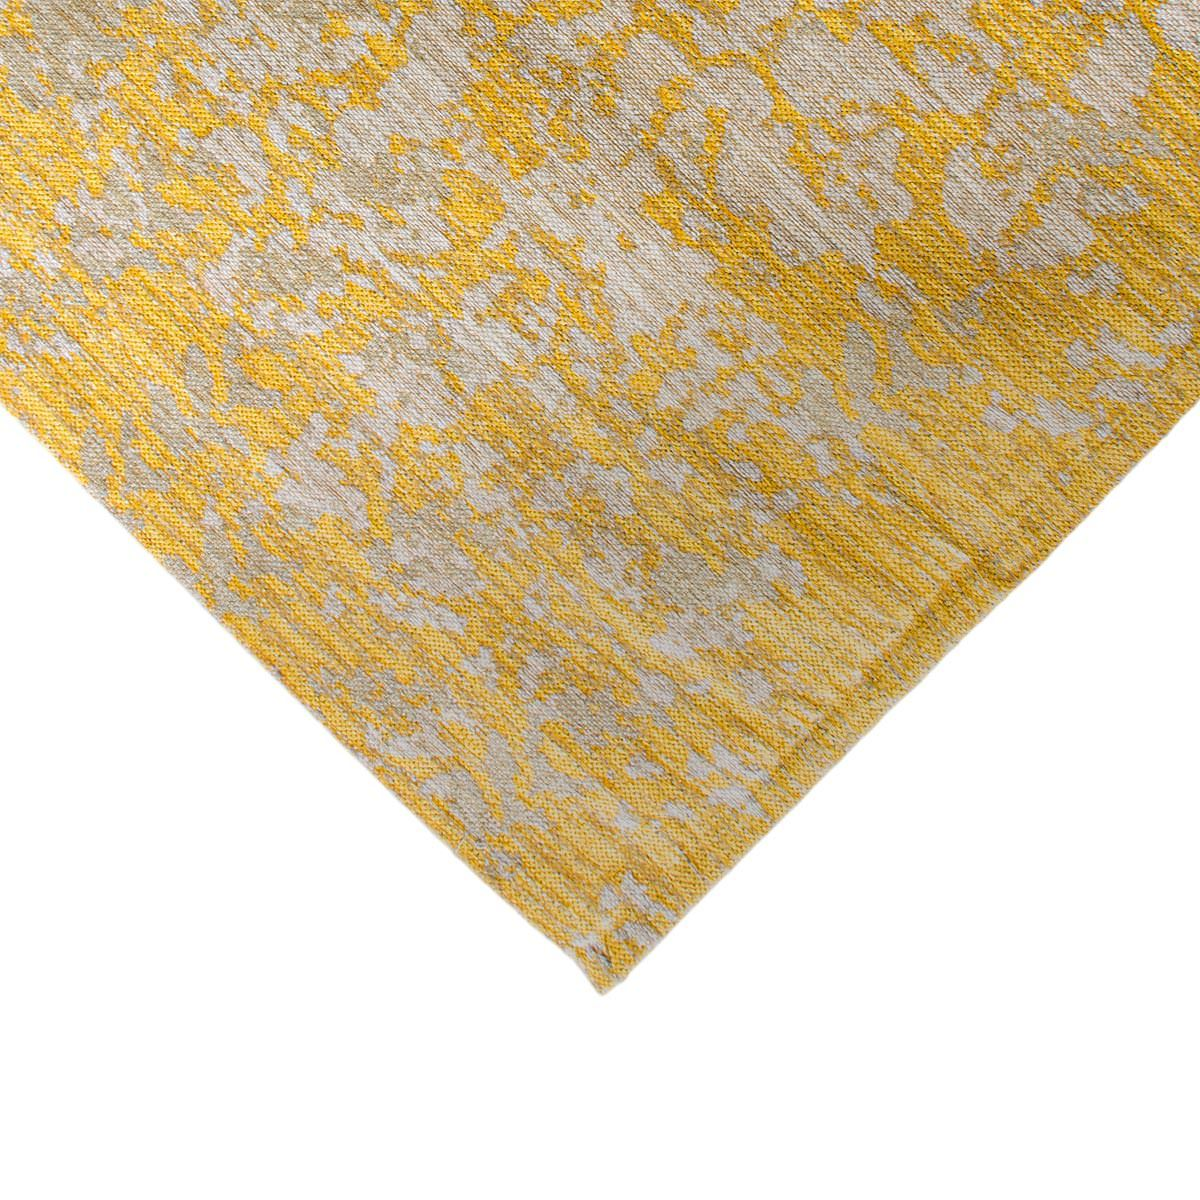 Marseille Rug 29 Yellow/Grey 4